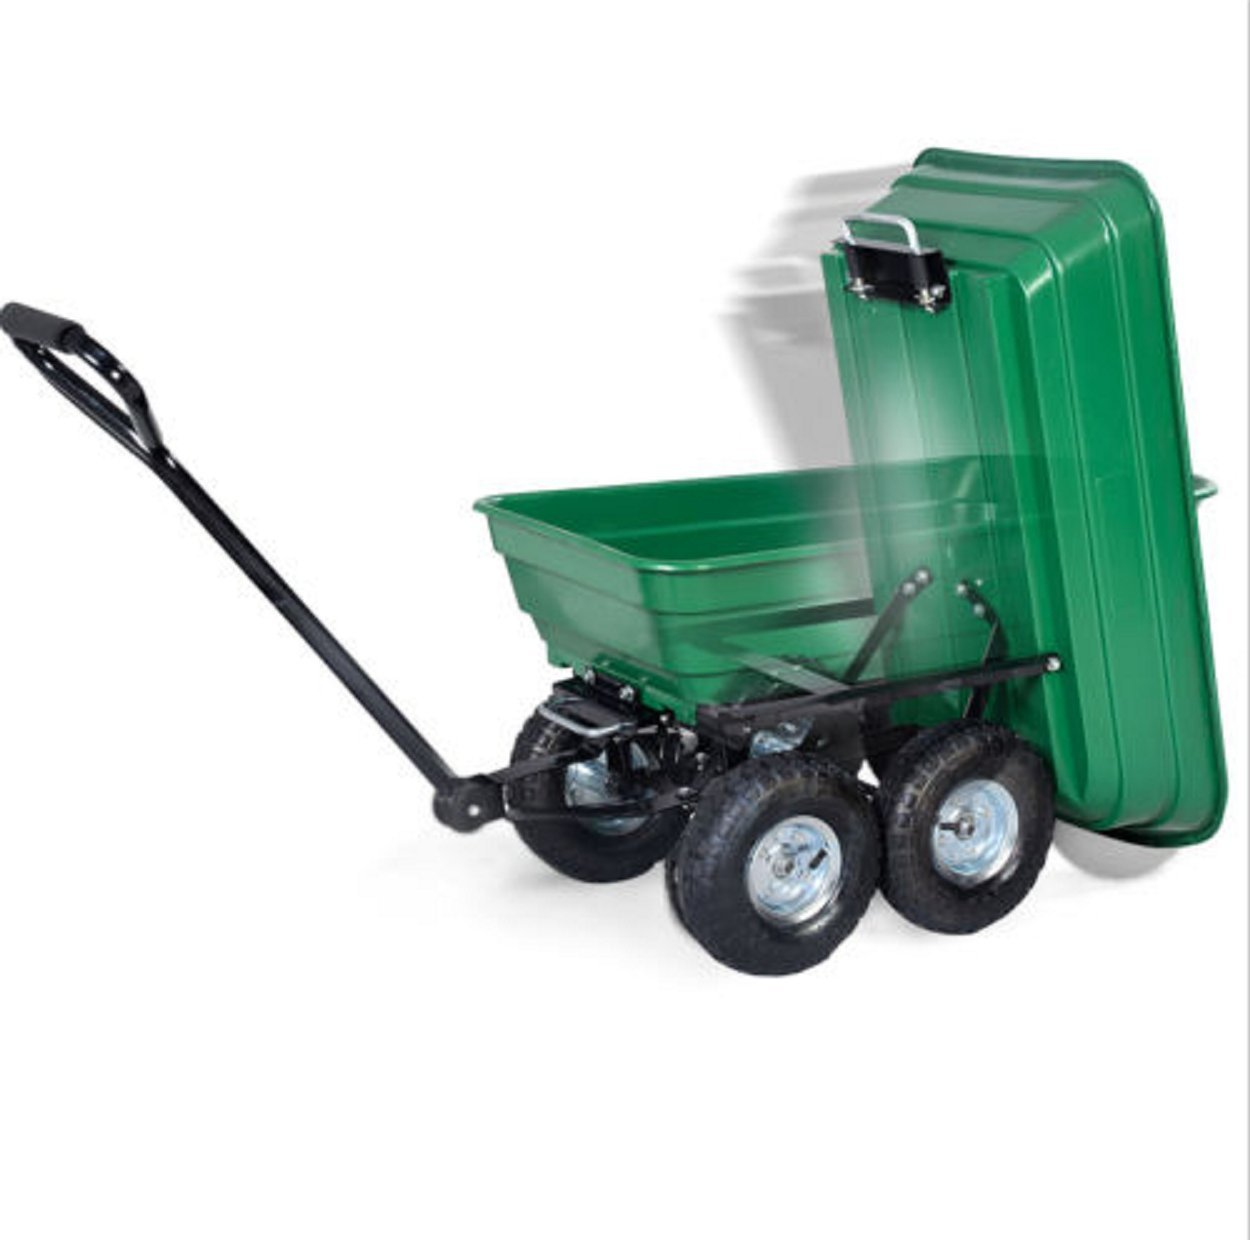 650LB Green Garden Cart Dump Wagon Trailer Lawn Wheels Rolling Storage Wagon Carrier Barrow Air Tires Heavy Duty